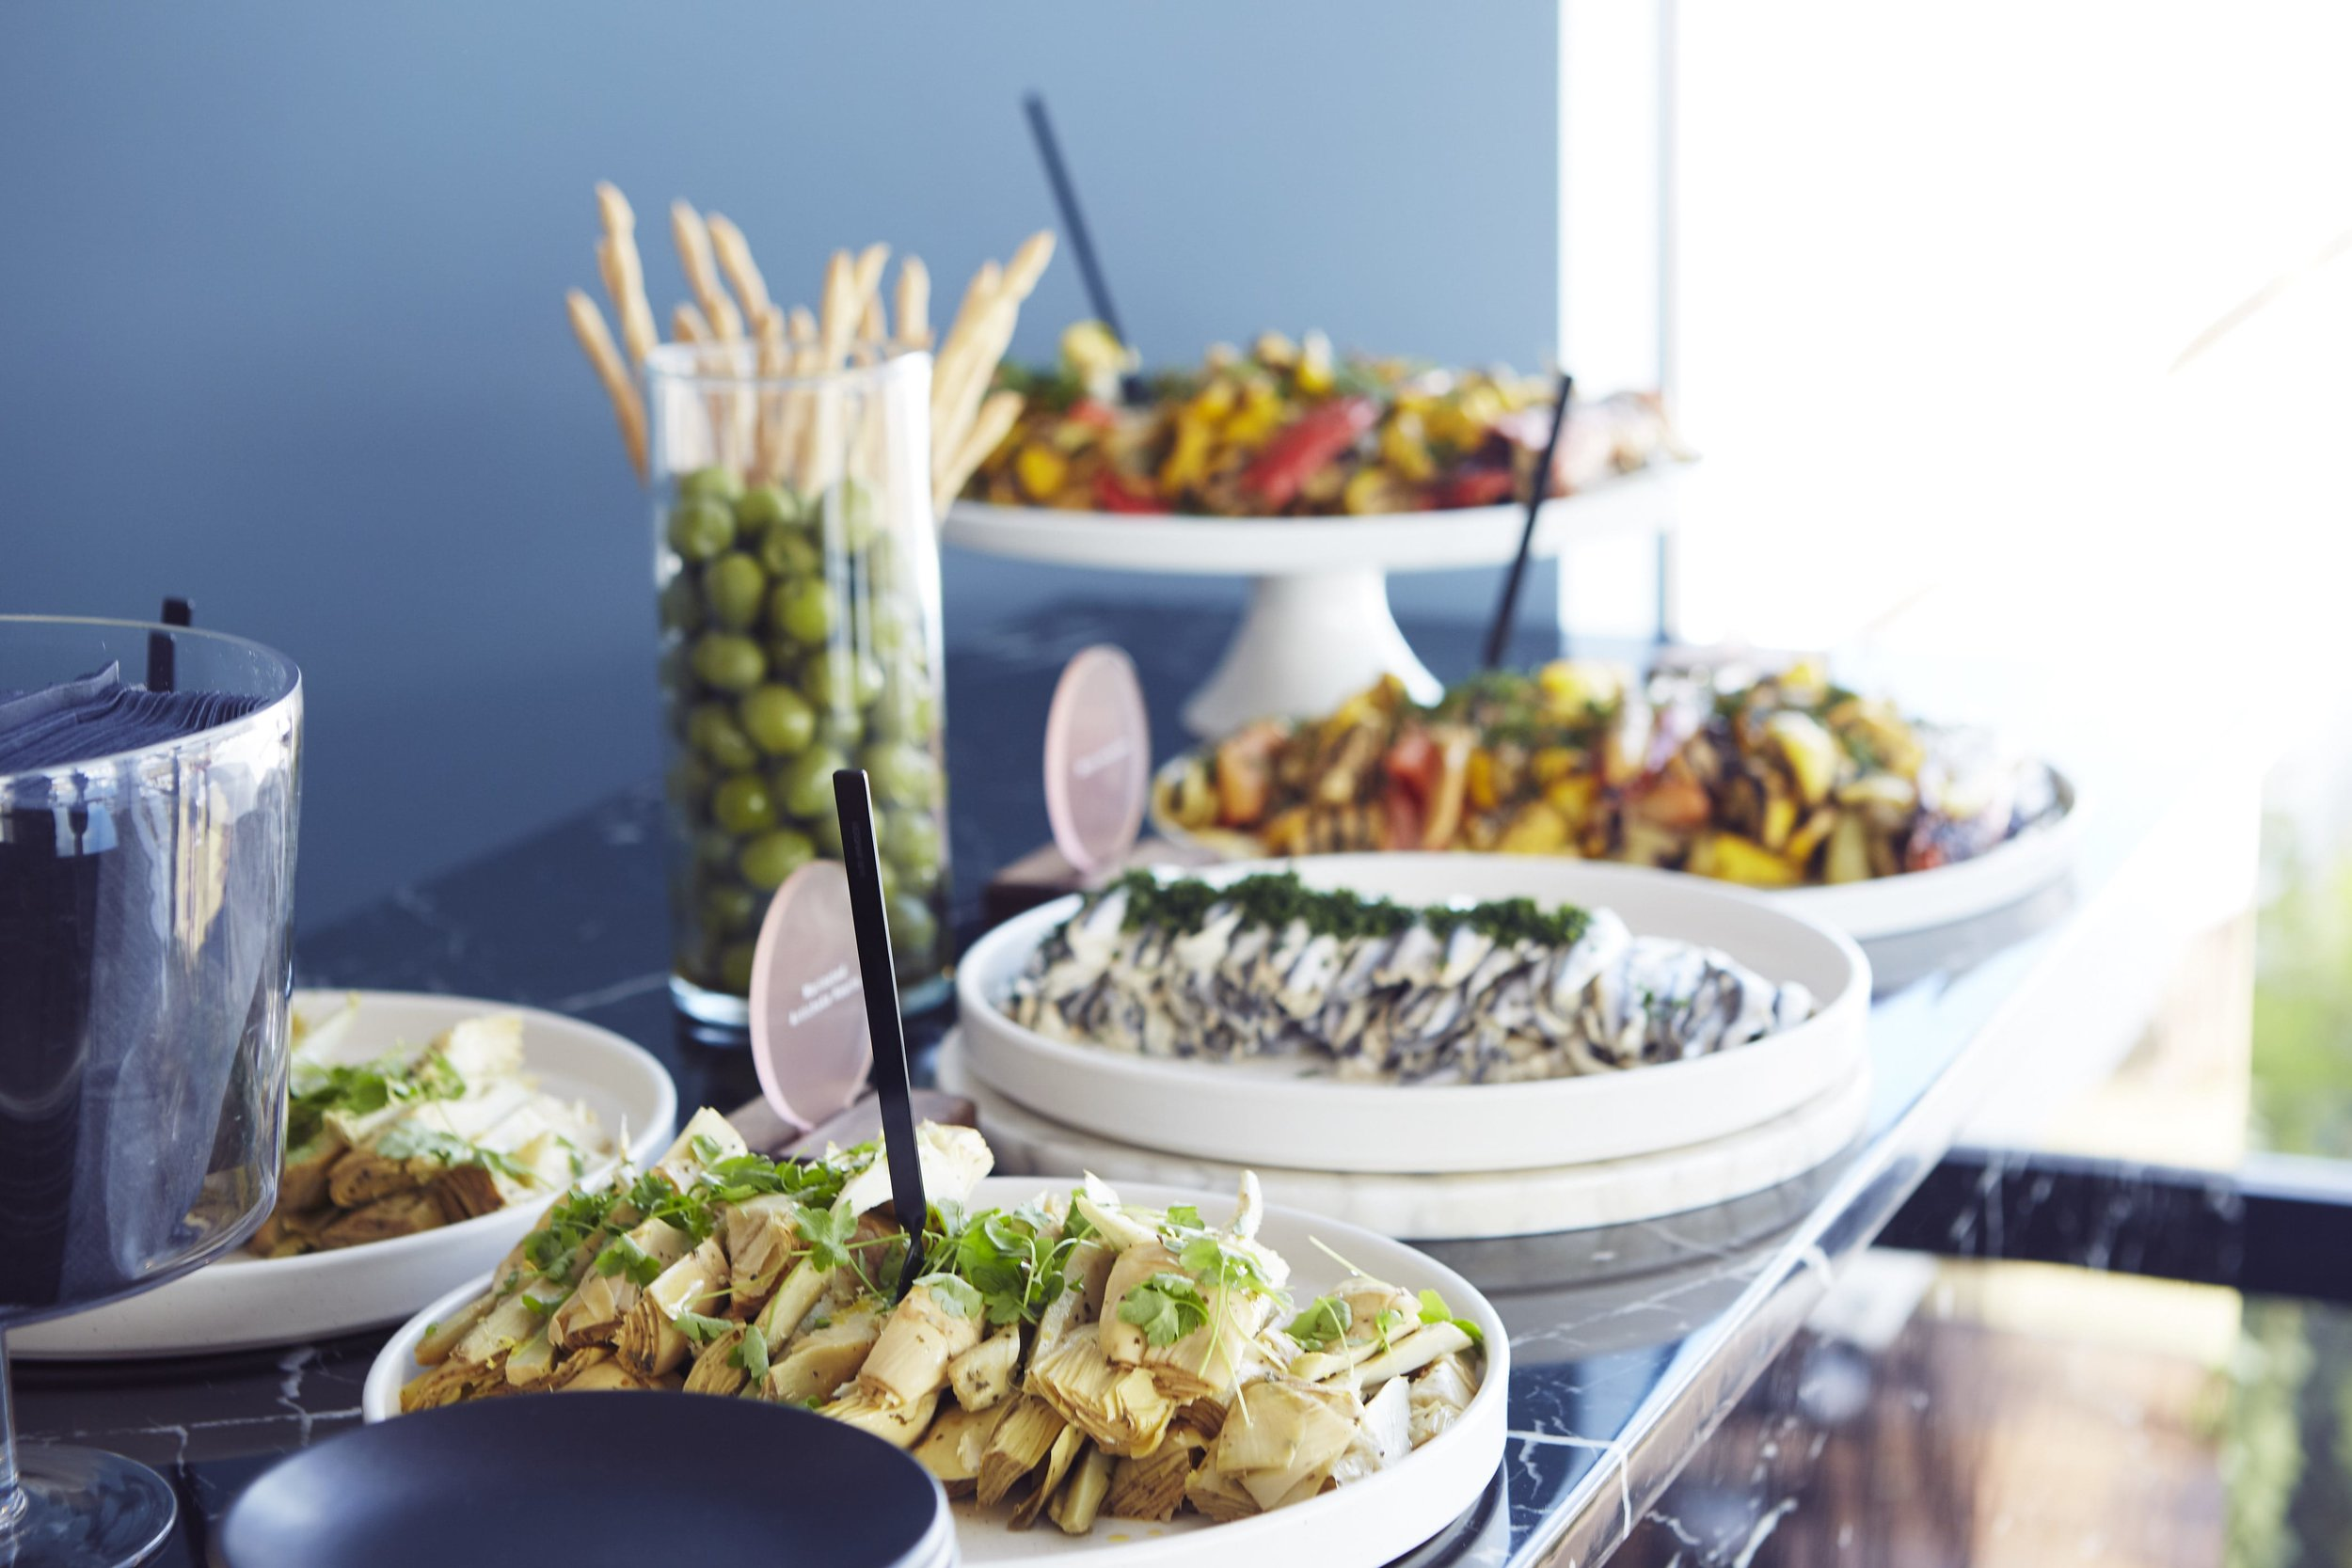 Antipasto Platter featuring a selection of gourmet meats, cheeses and roasted vegetables at the 2018 Alfa Romeo Portsea Polo.